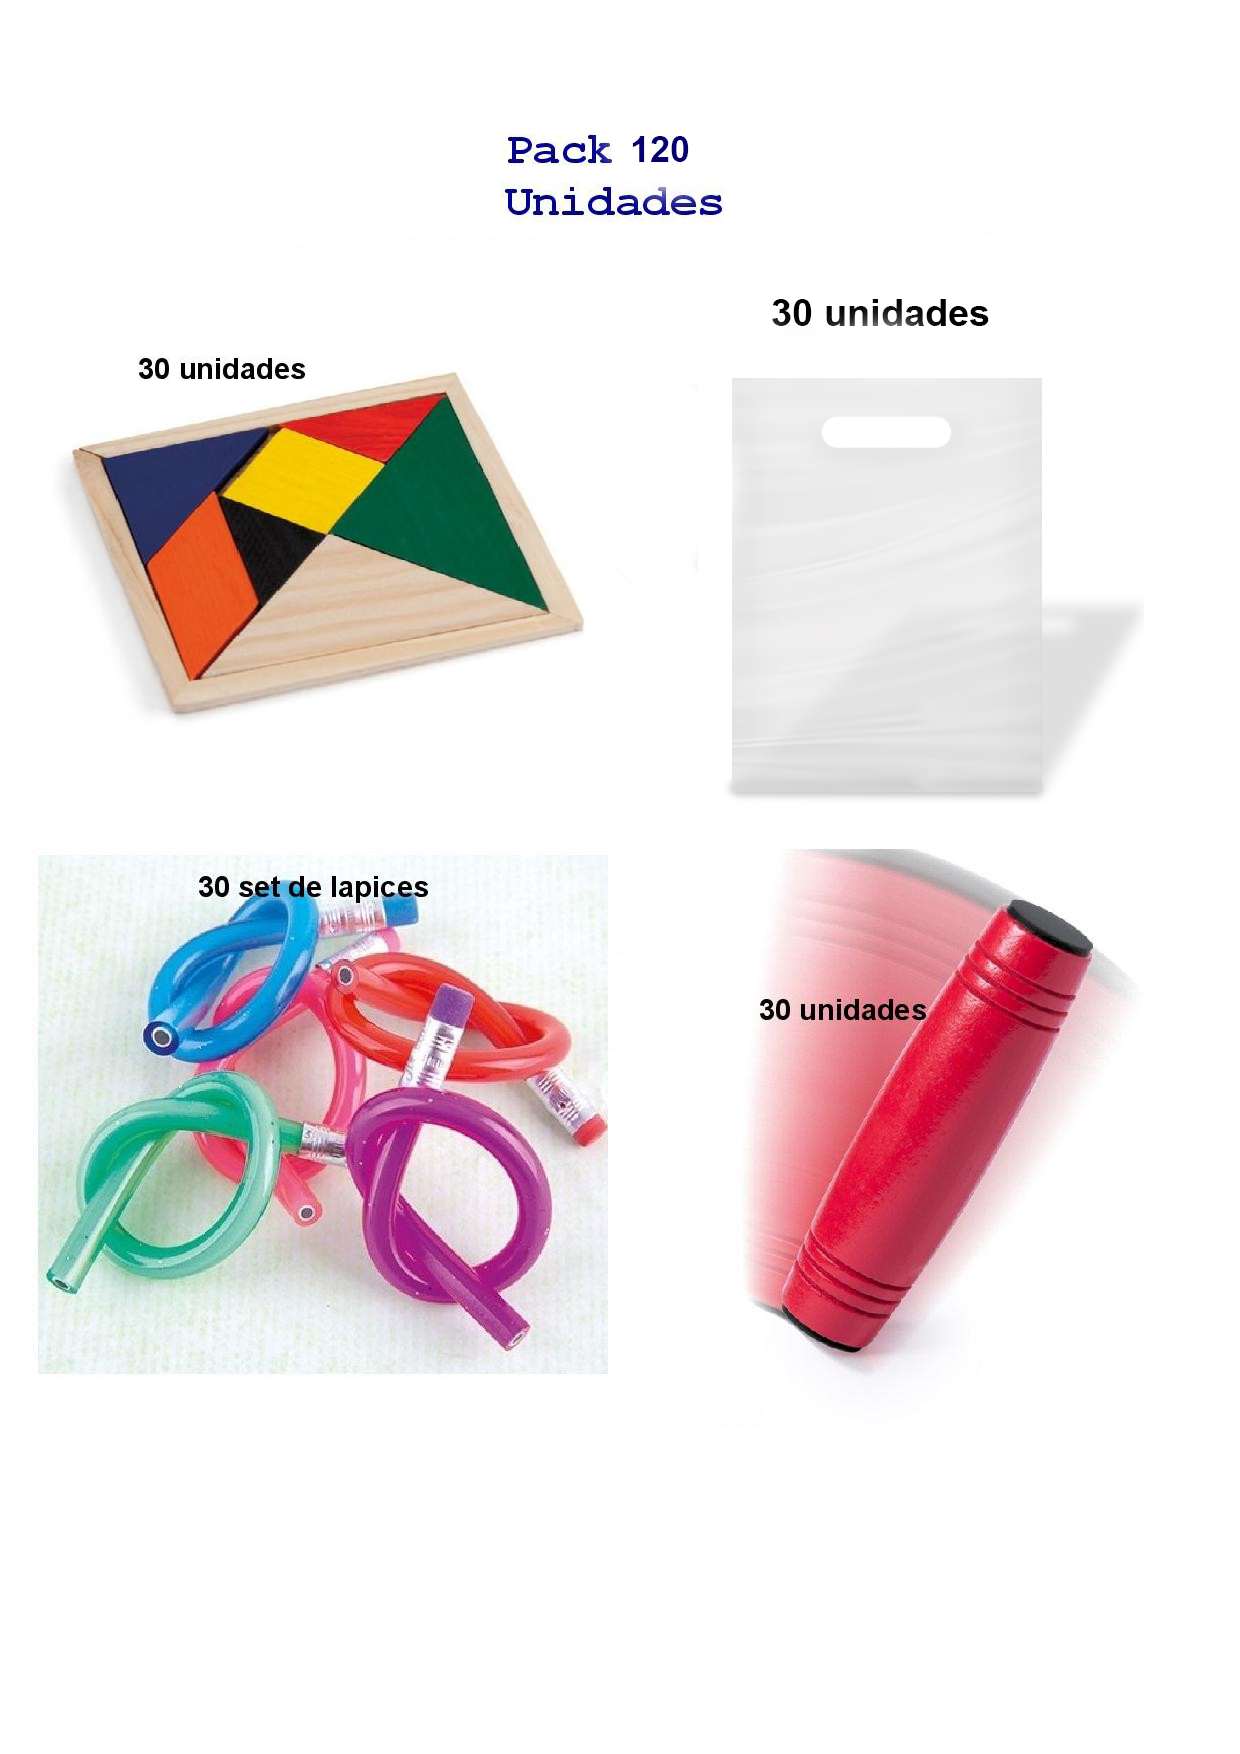 Great pack for children's gifts 30 rondux games + 30 set flexible pencils + 30 puzzles wit